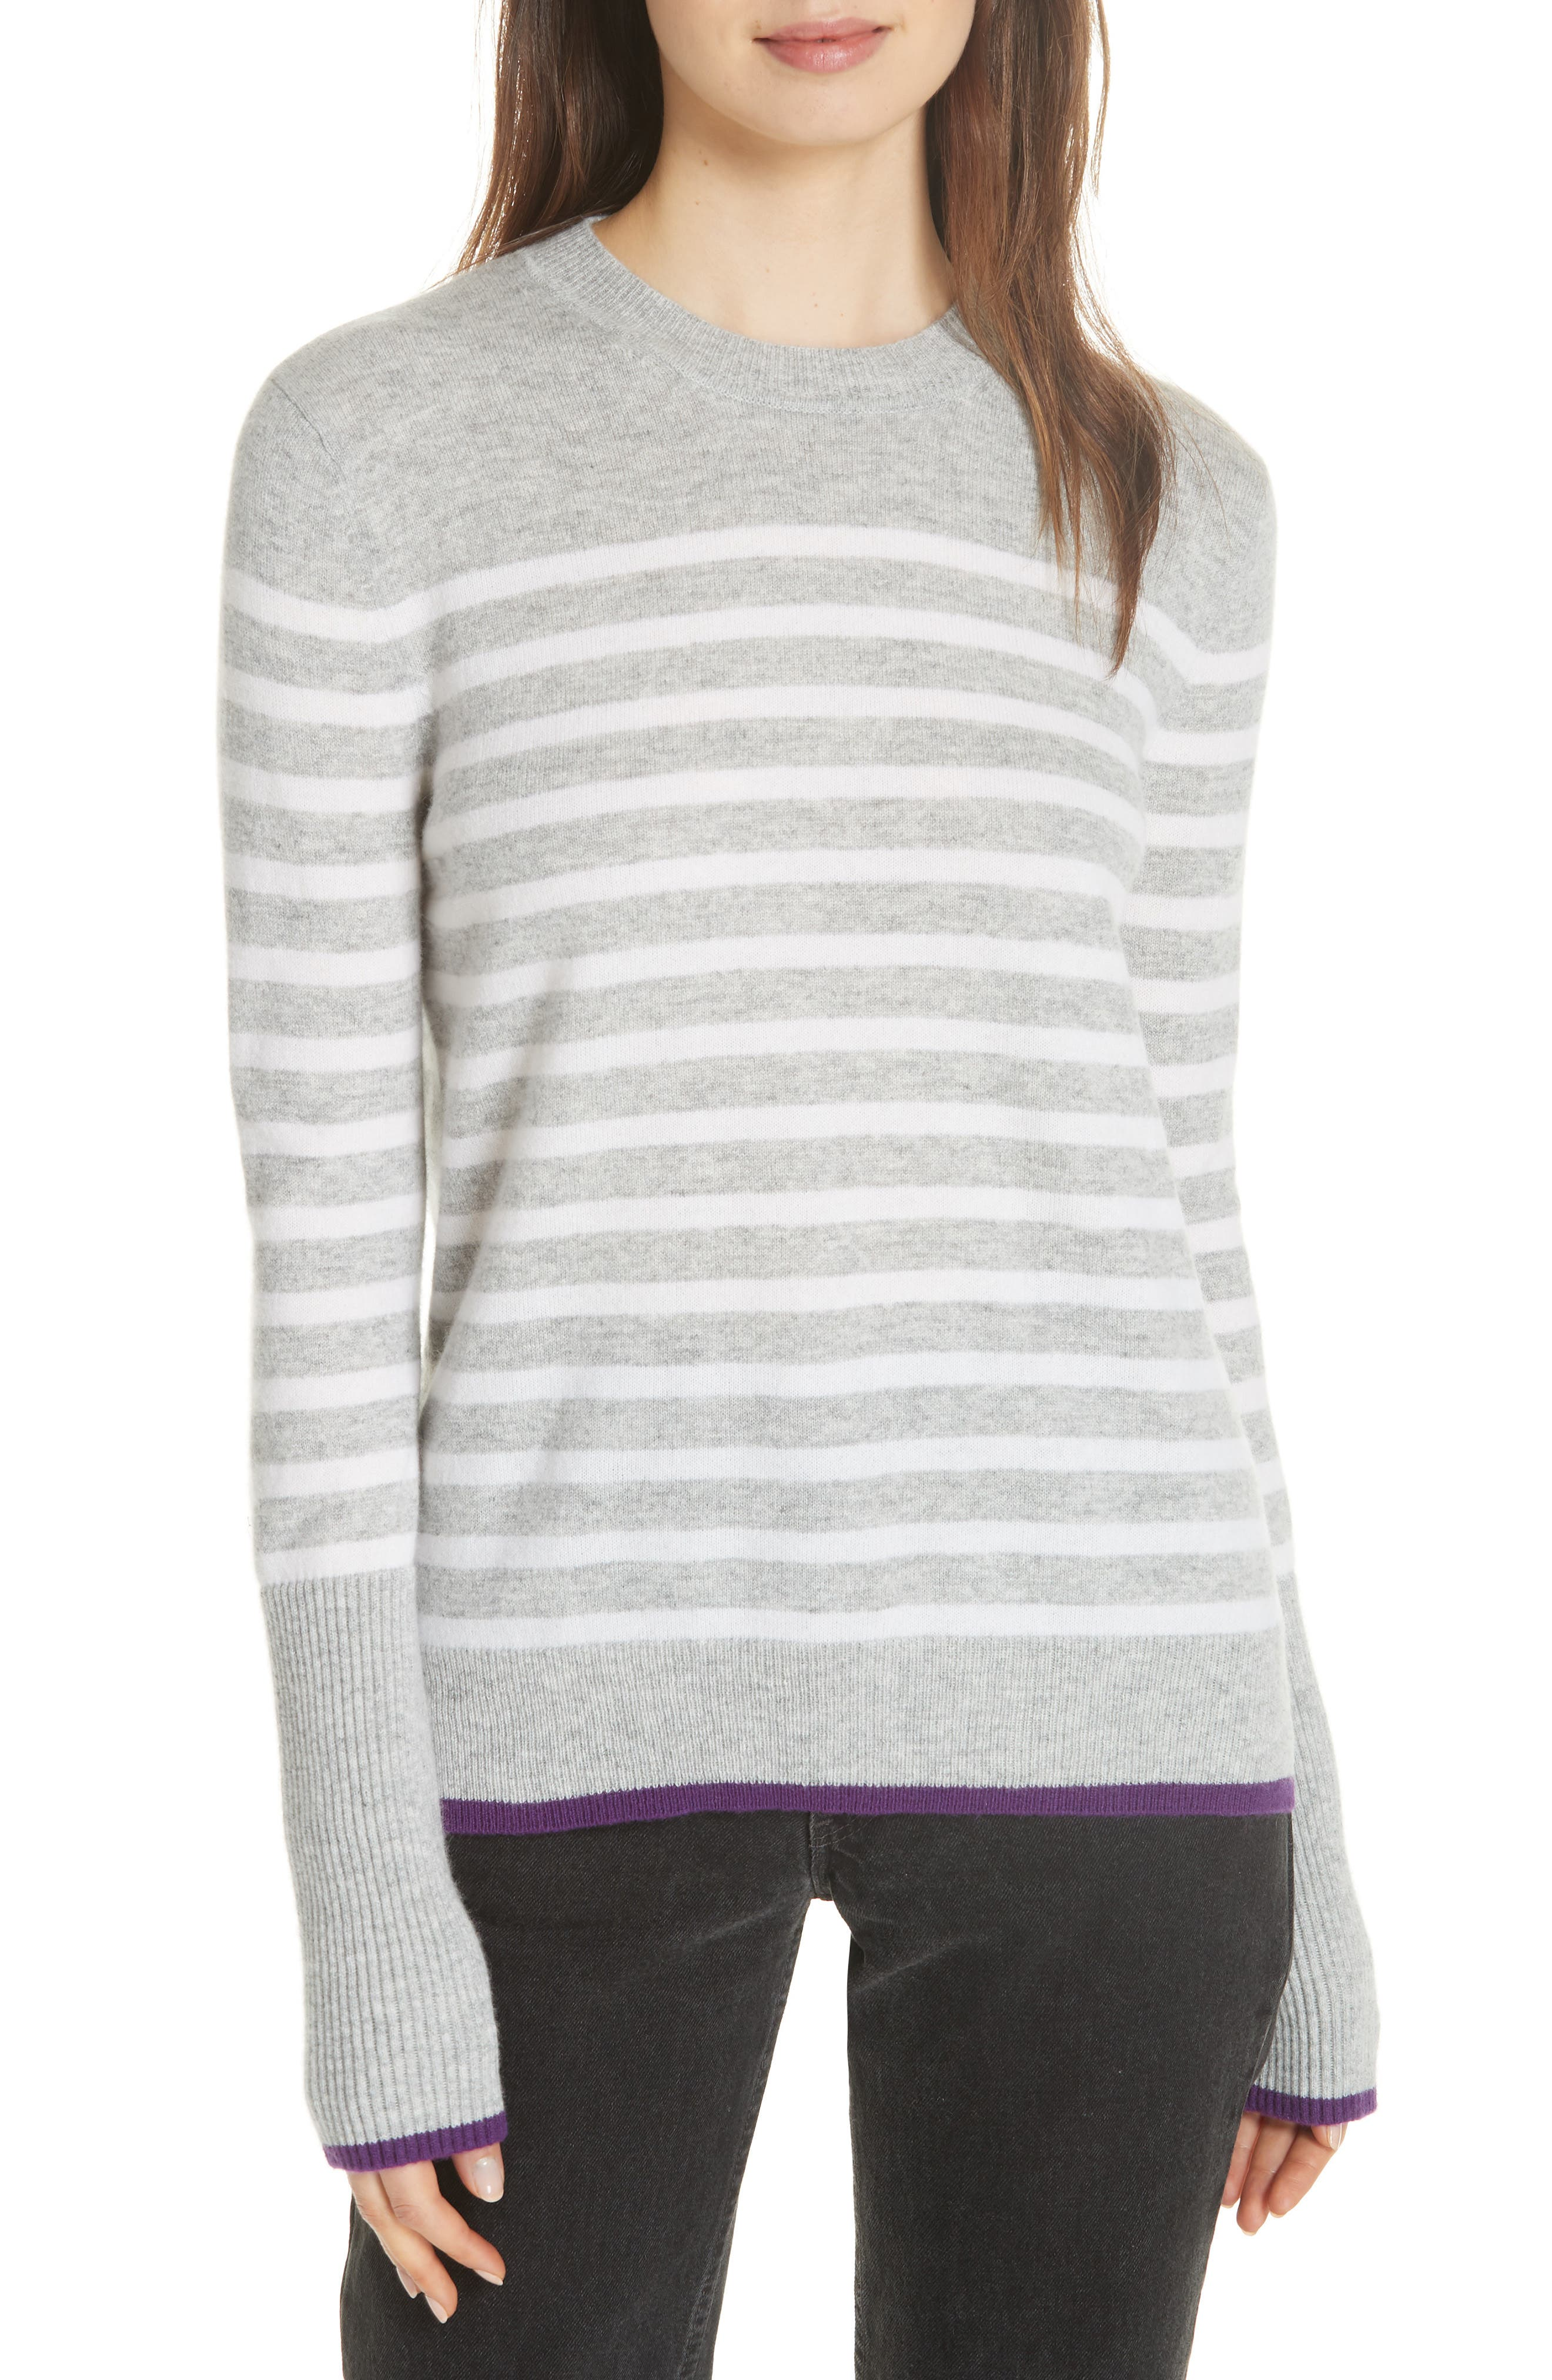 AAA Lean Lines Cashmere Sweater,                             Main thumbnail 1, color,                             GREY MARLE/ CREAM/ PURPLE